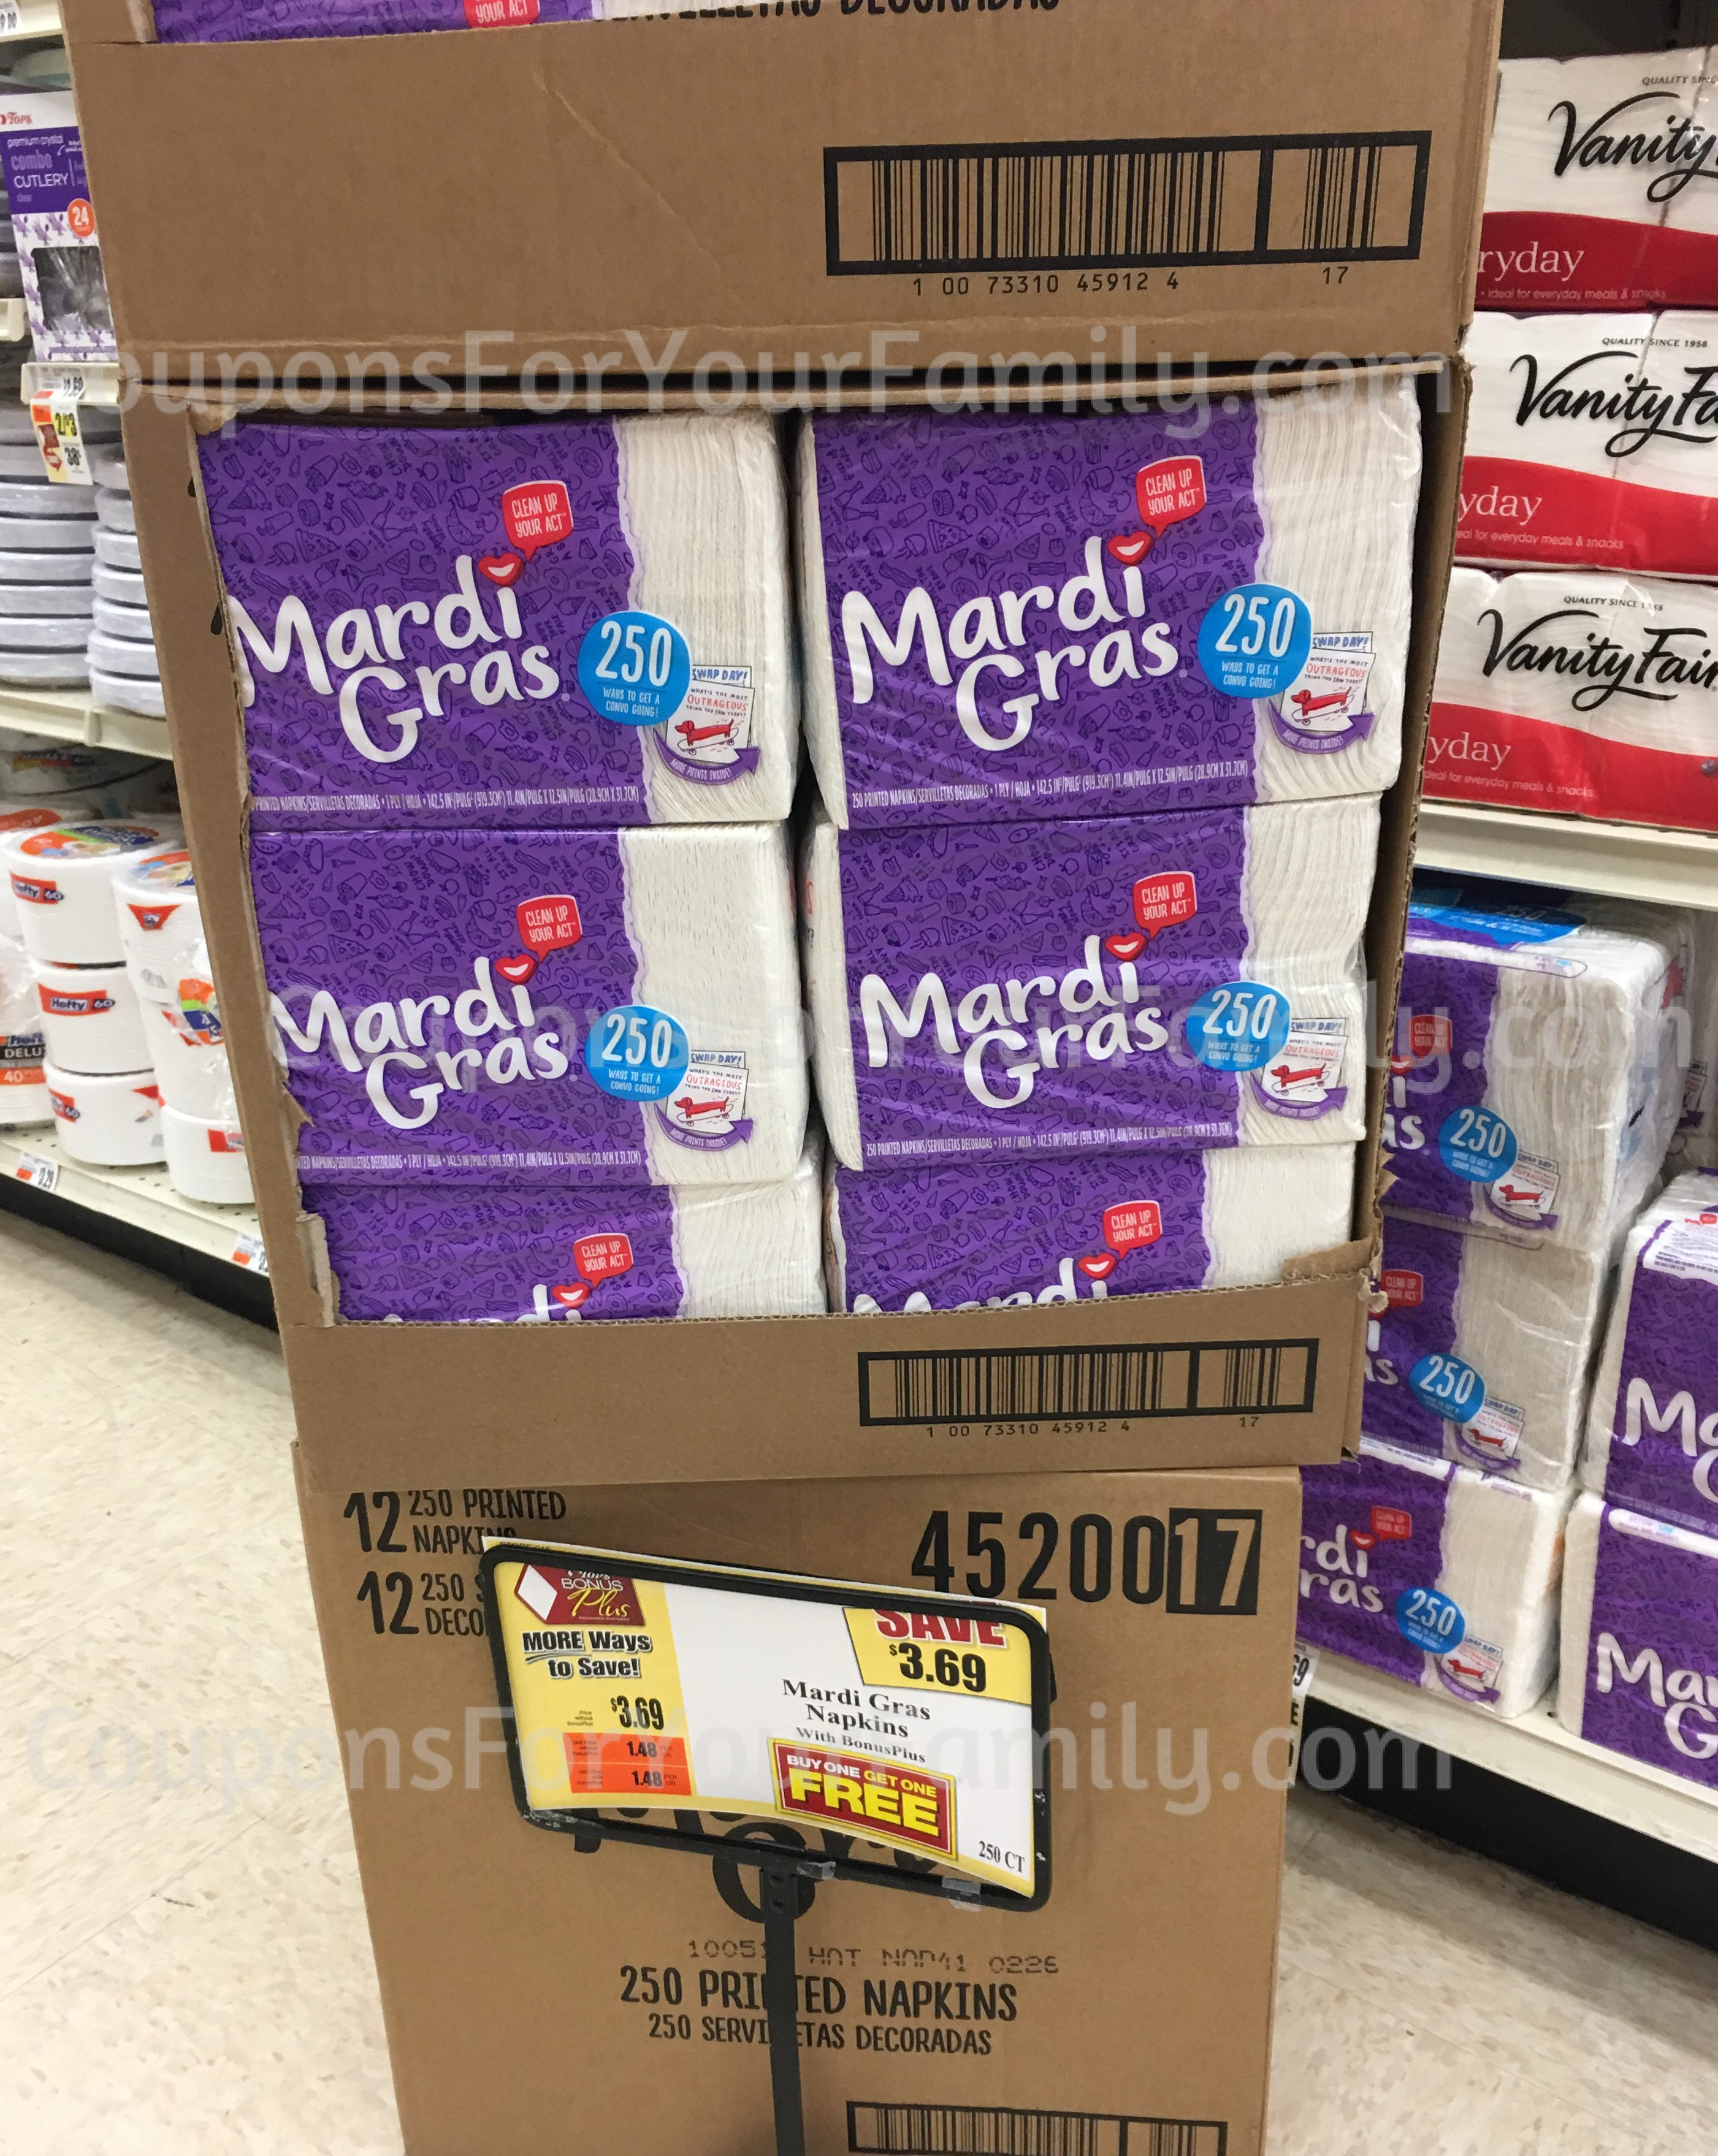 **HOT** Mardi Gras Napkins Deal at Tops– only $.55 each after coupon & rebate!